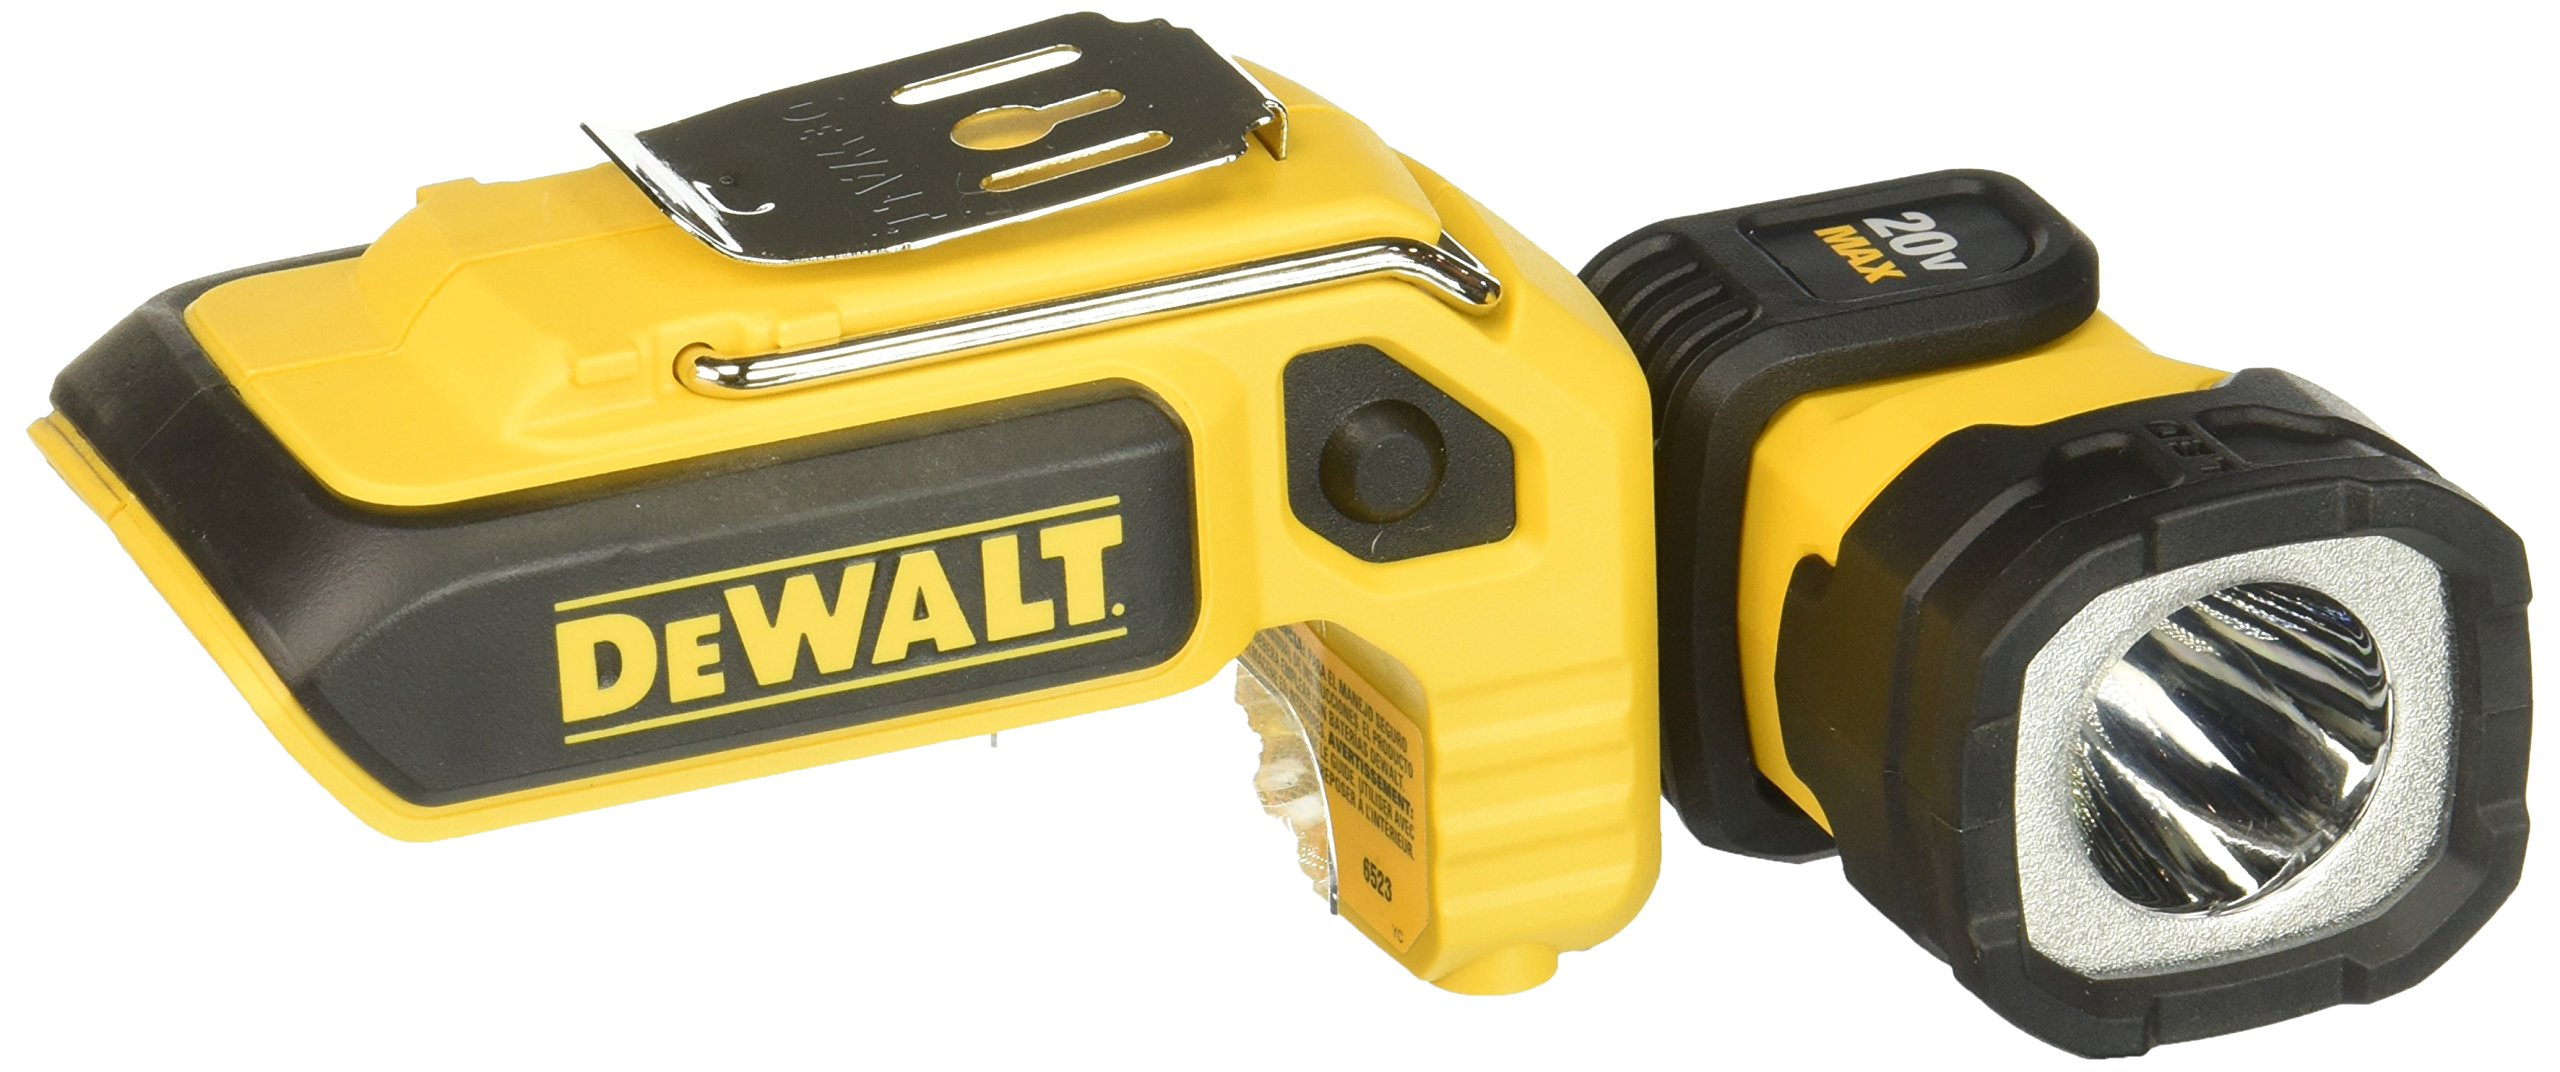 DEWALT DCL044 20V Max LED Hand Held Work Light,